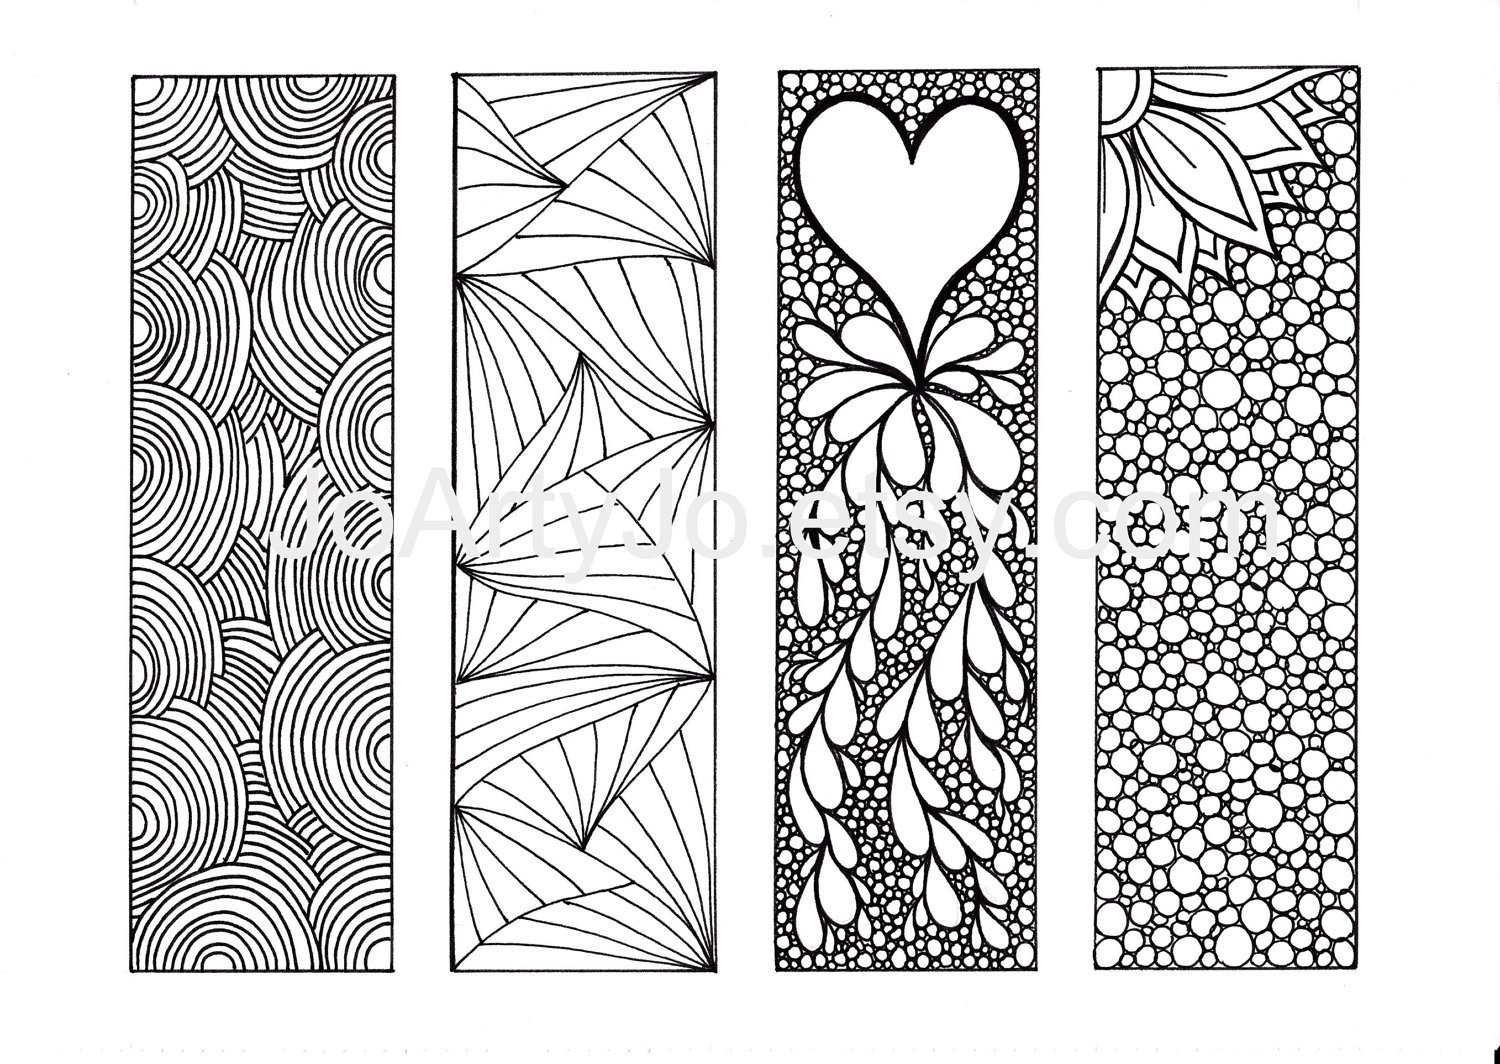 Bookmarks To Color Free - Google Search | Library Ideas intended for Cool Bookmarks To Print And Color 27220